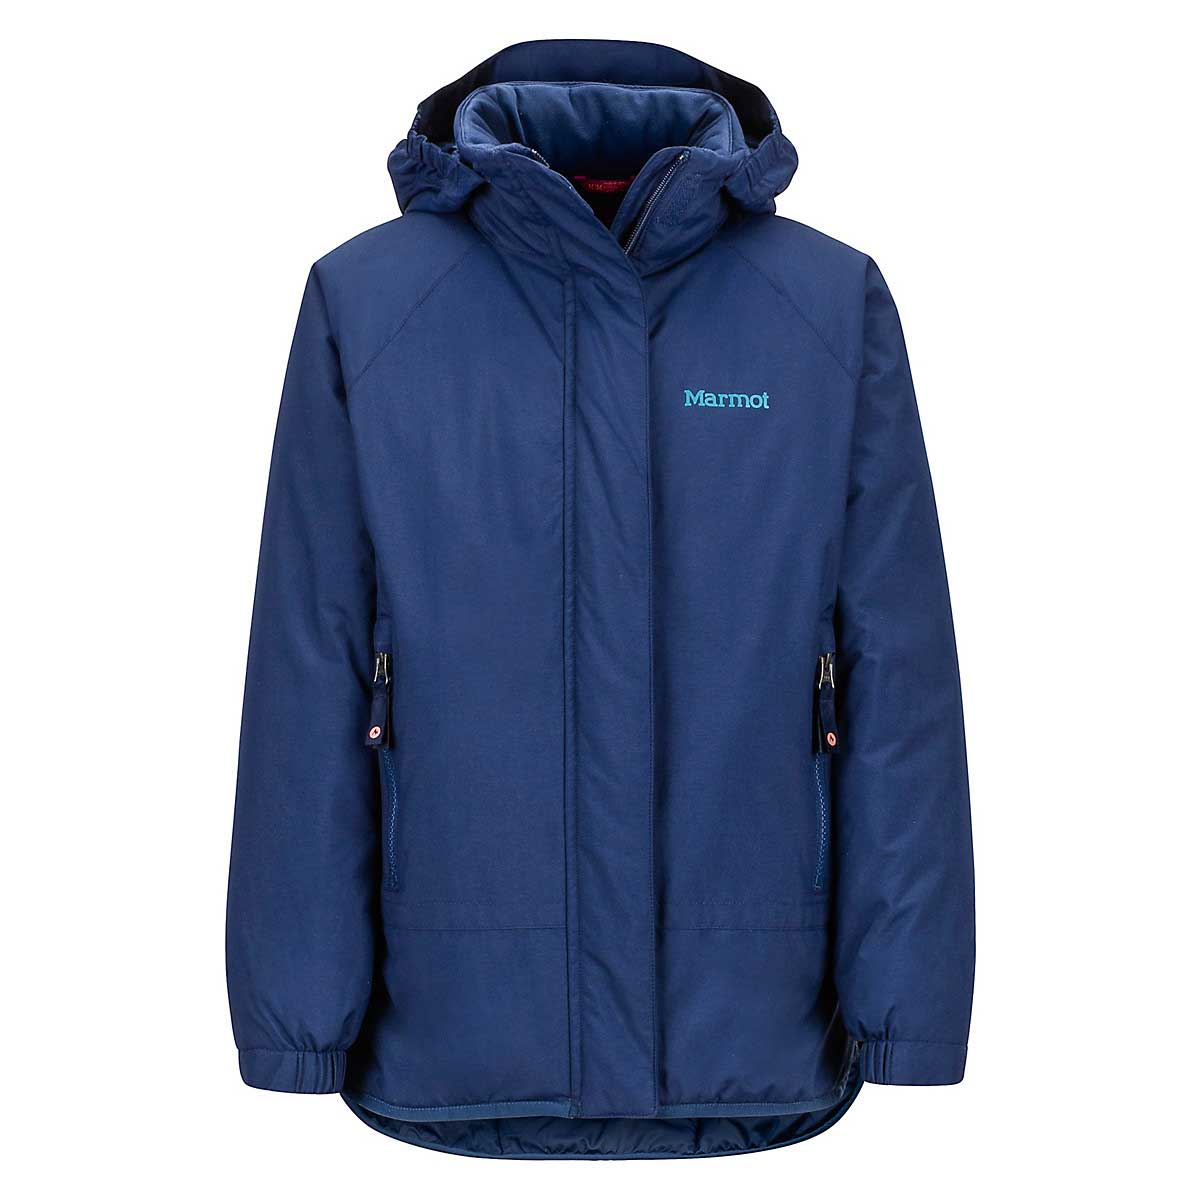 Marmot Girls' Janet Jacket in Arctic Navy